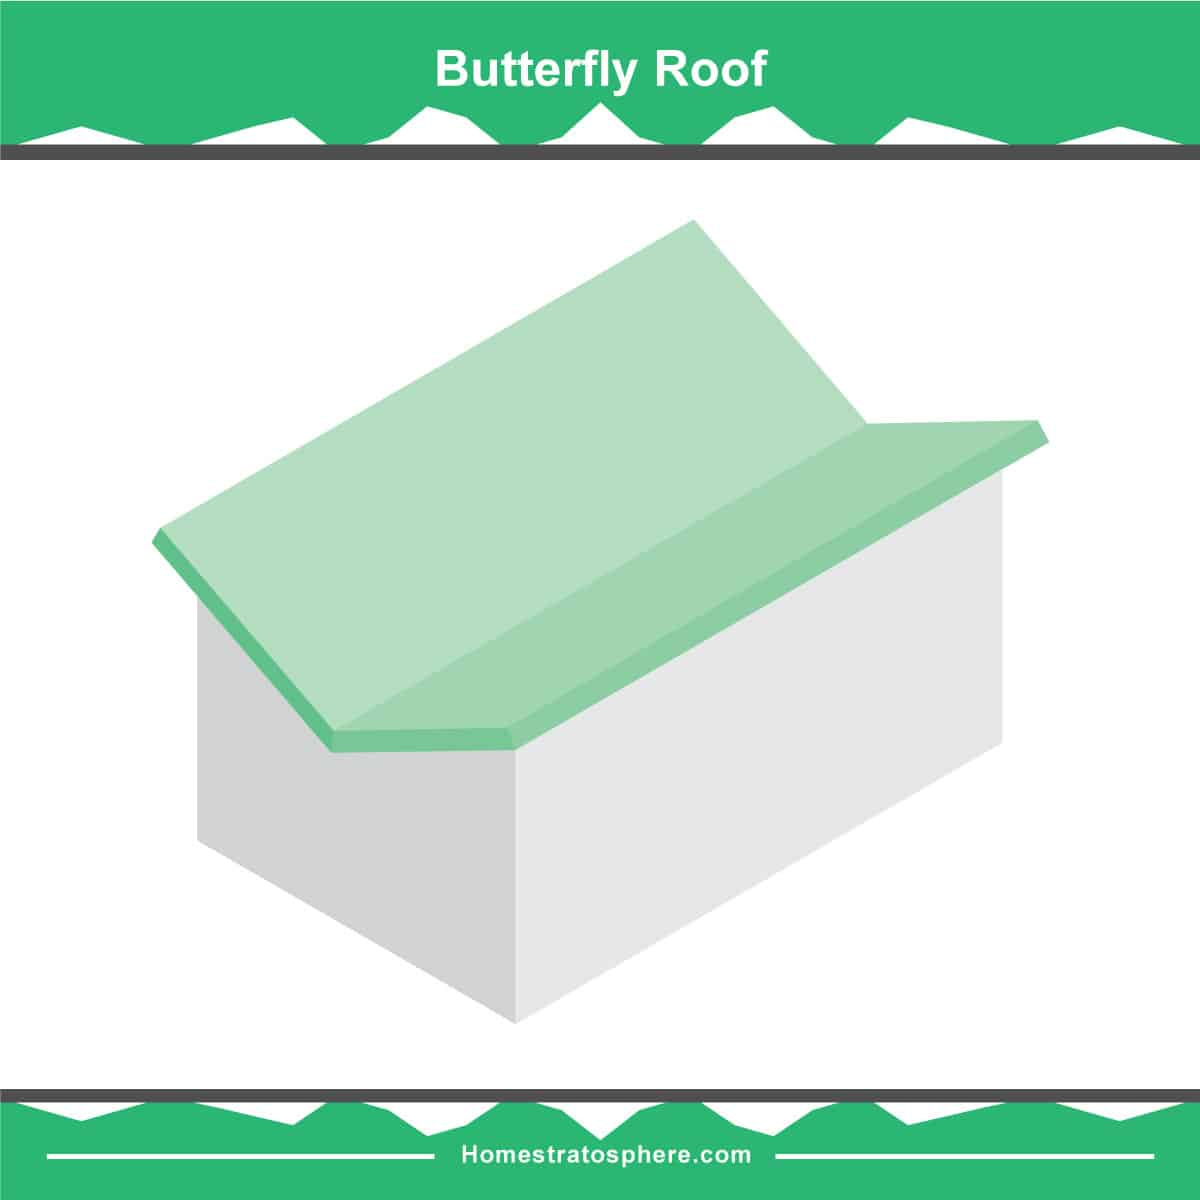 Butterfly roof diagram